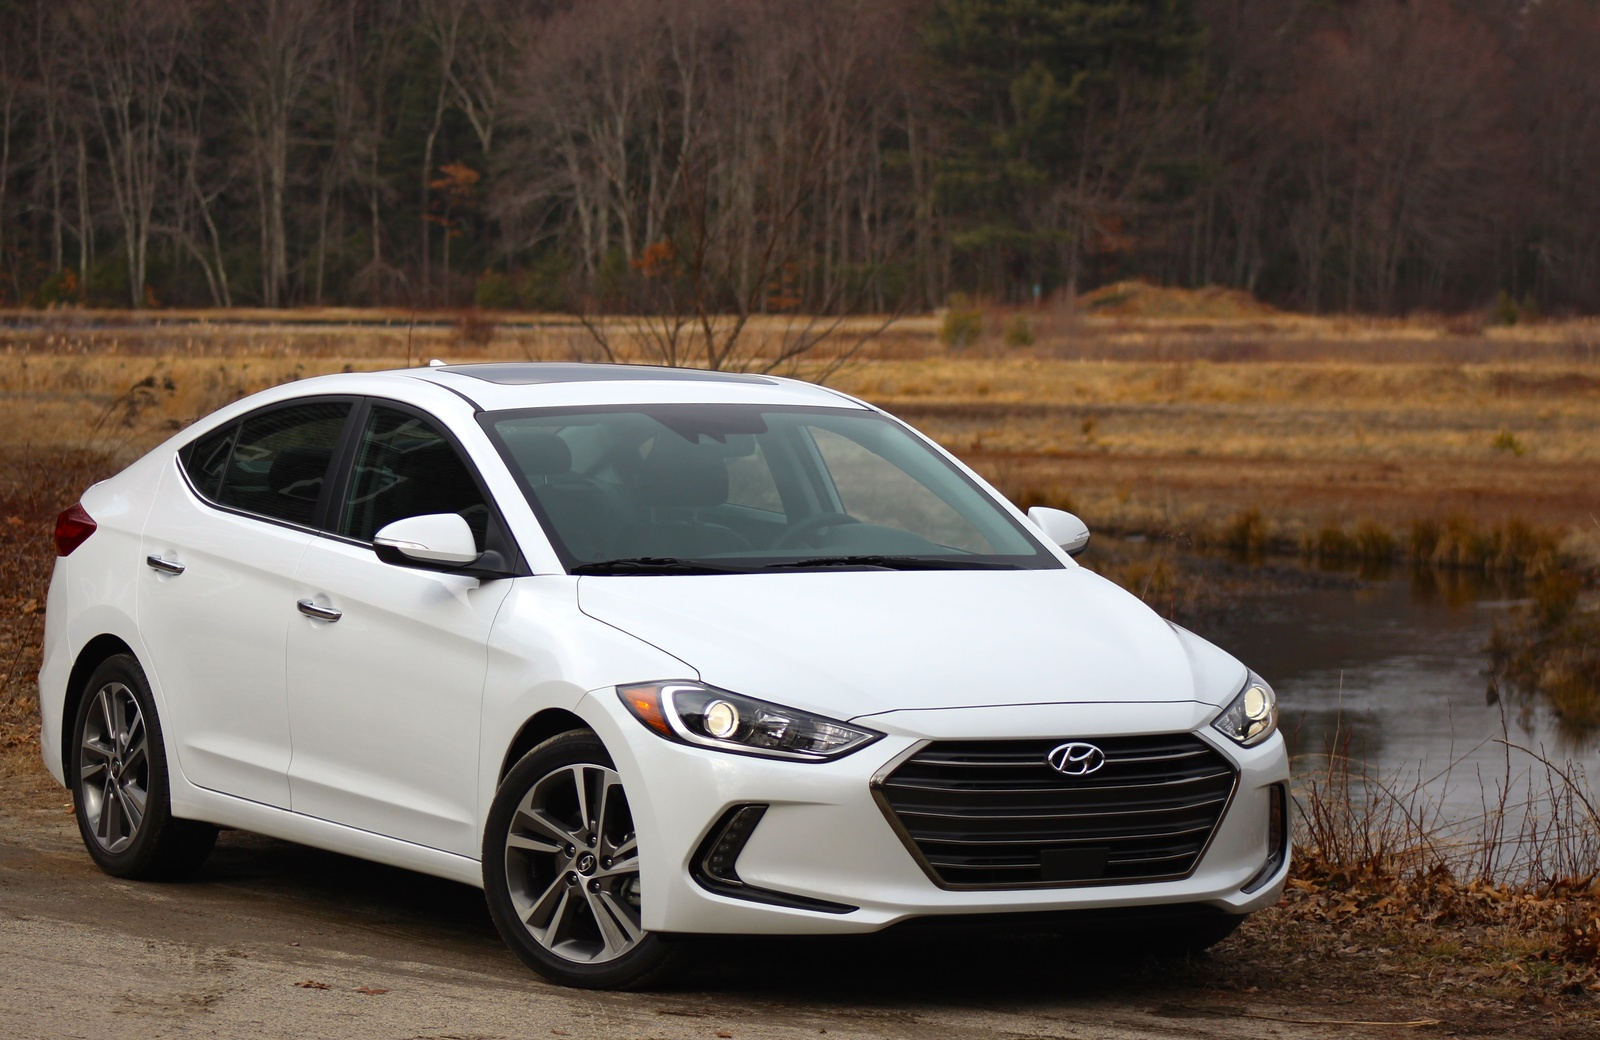 New 2015 2016 2017 Hyundai Elantra For Sale Cargurus